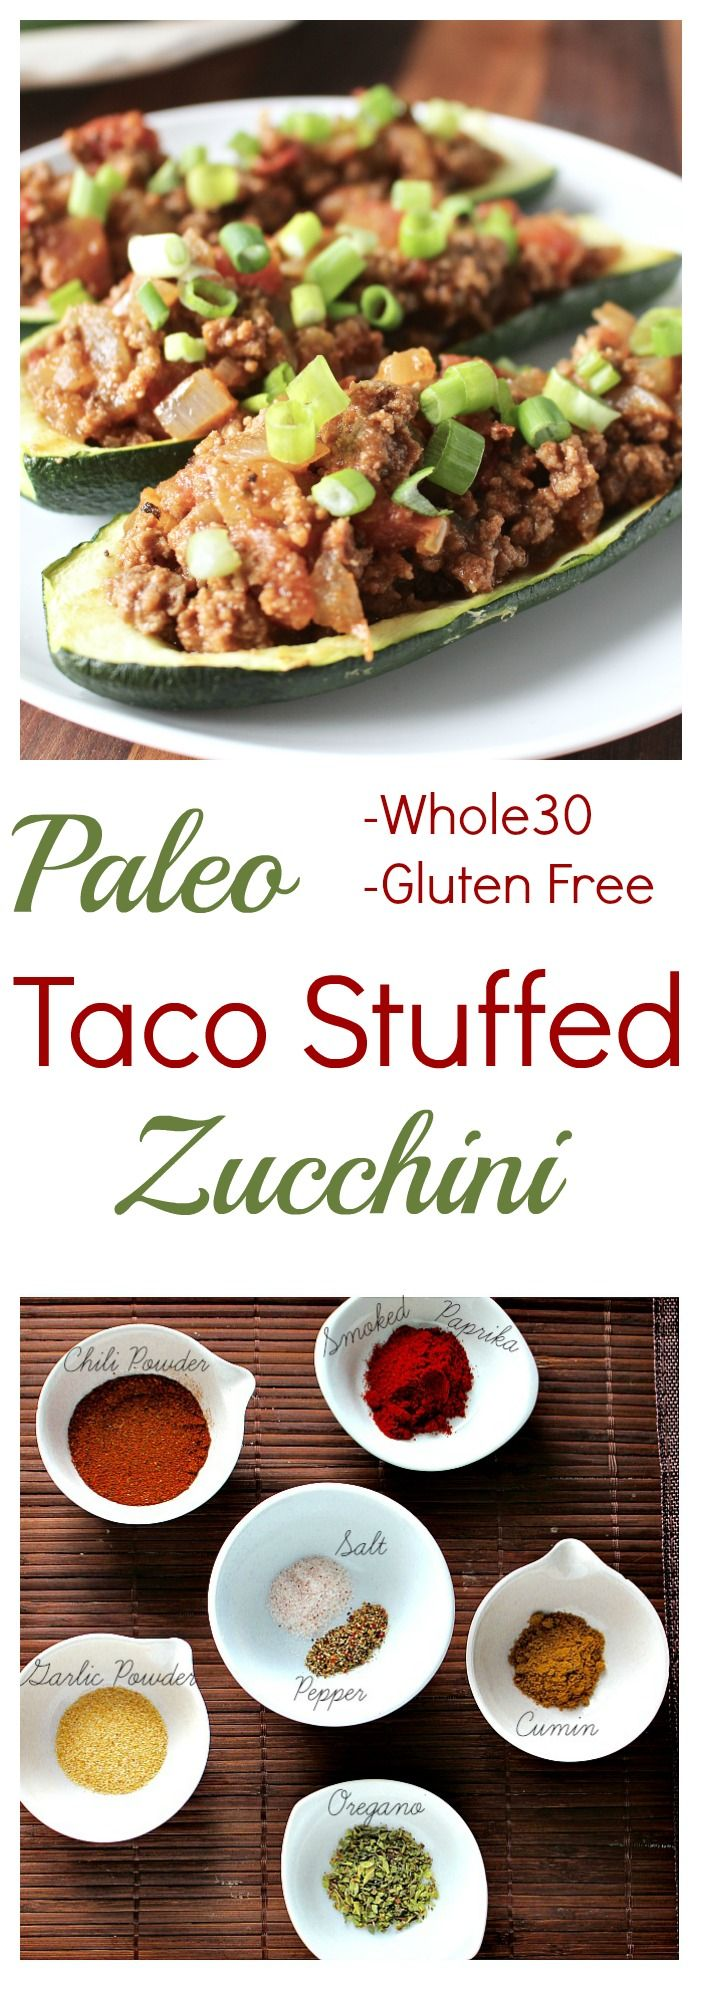 Paleo Taco Stuffed Zucchini- all the flavors of a taco, but made healthier. Whole30, gluten free, and low carb.